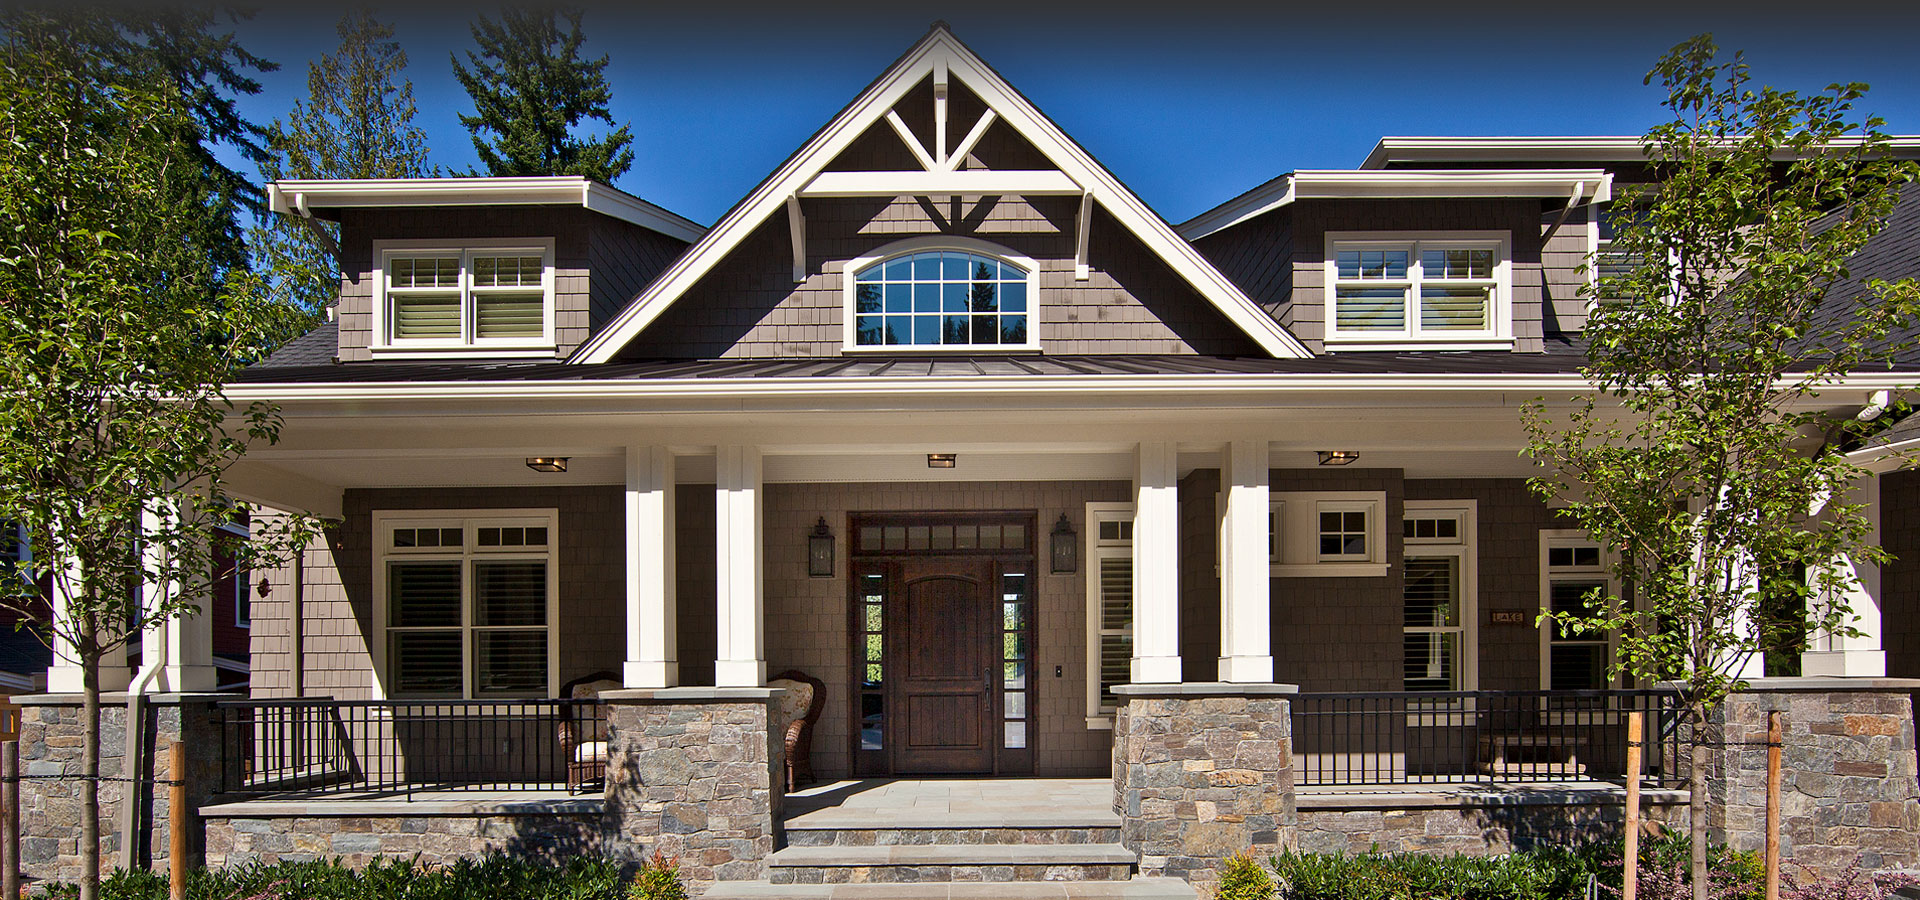 Charmant Design Guild Homes Portfolio. Custom Home Builders For Bellevue, Mercer  Island, Redmond,